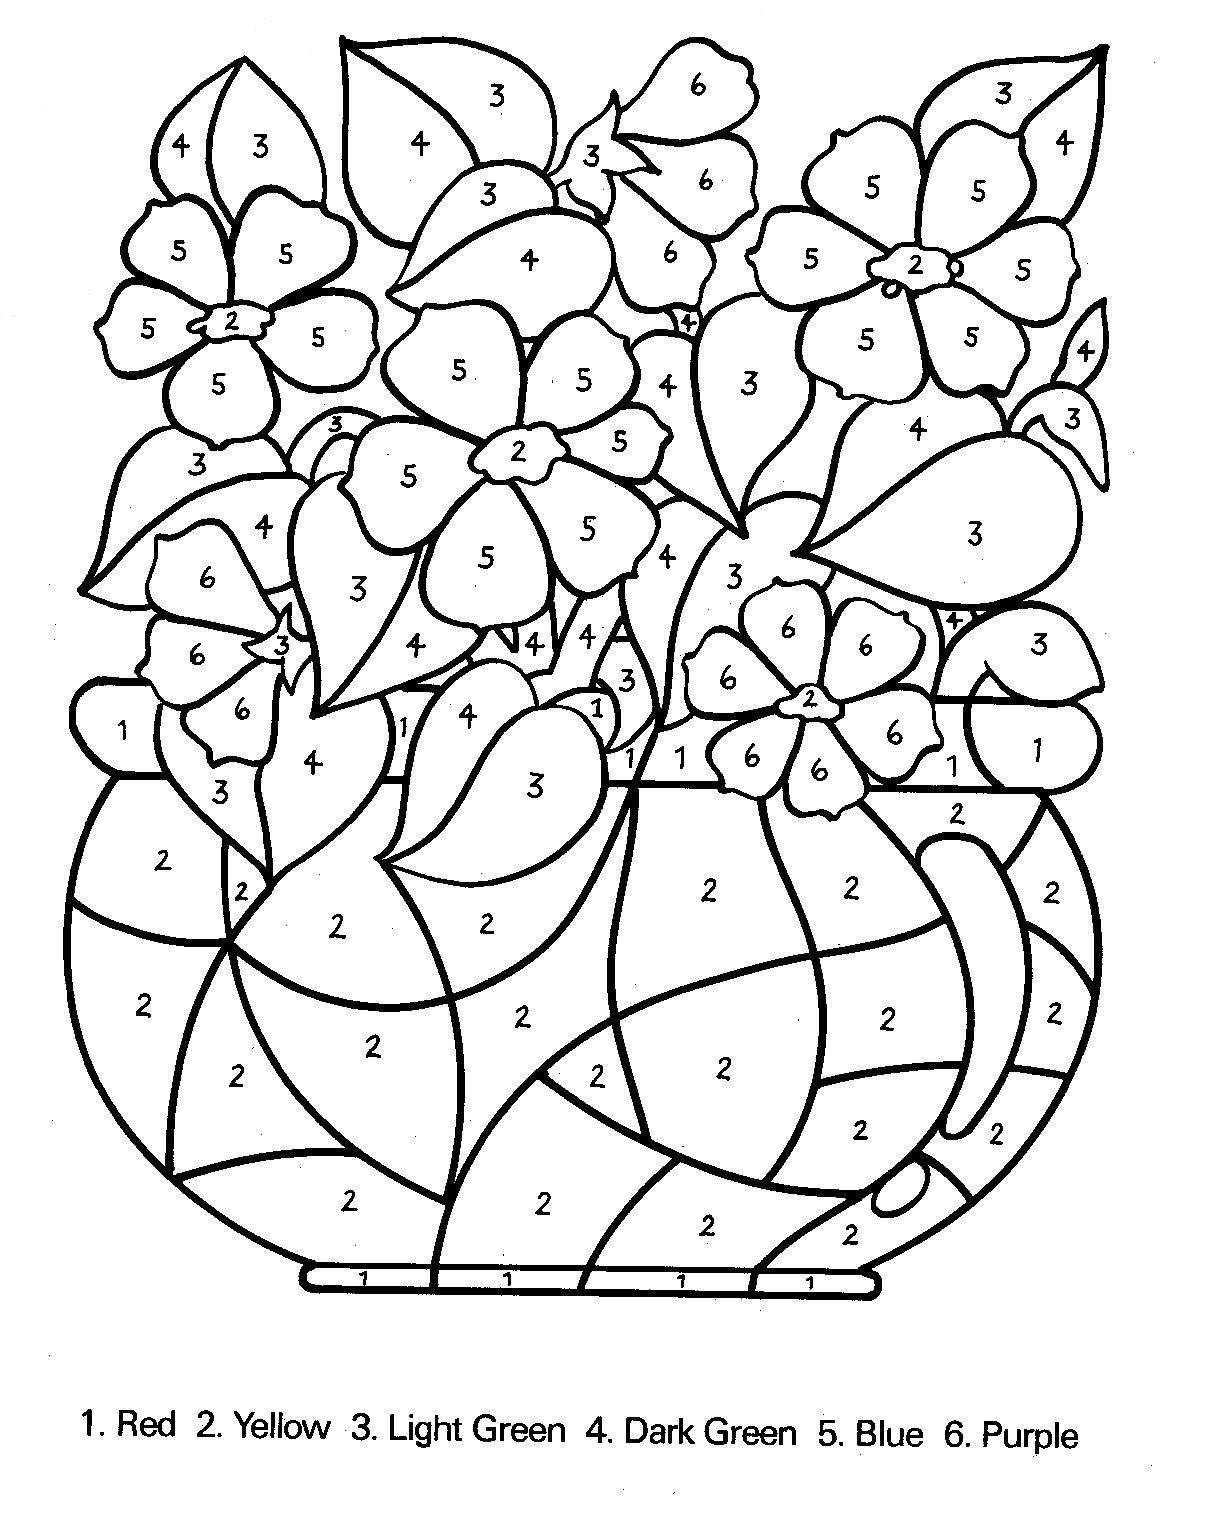 coloring sheets with numbers free printable number coloring pages for kids coloring with numbers sheets